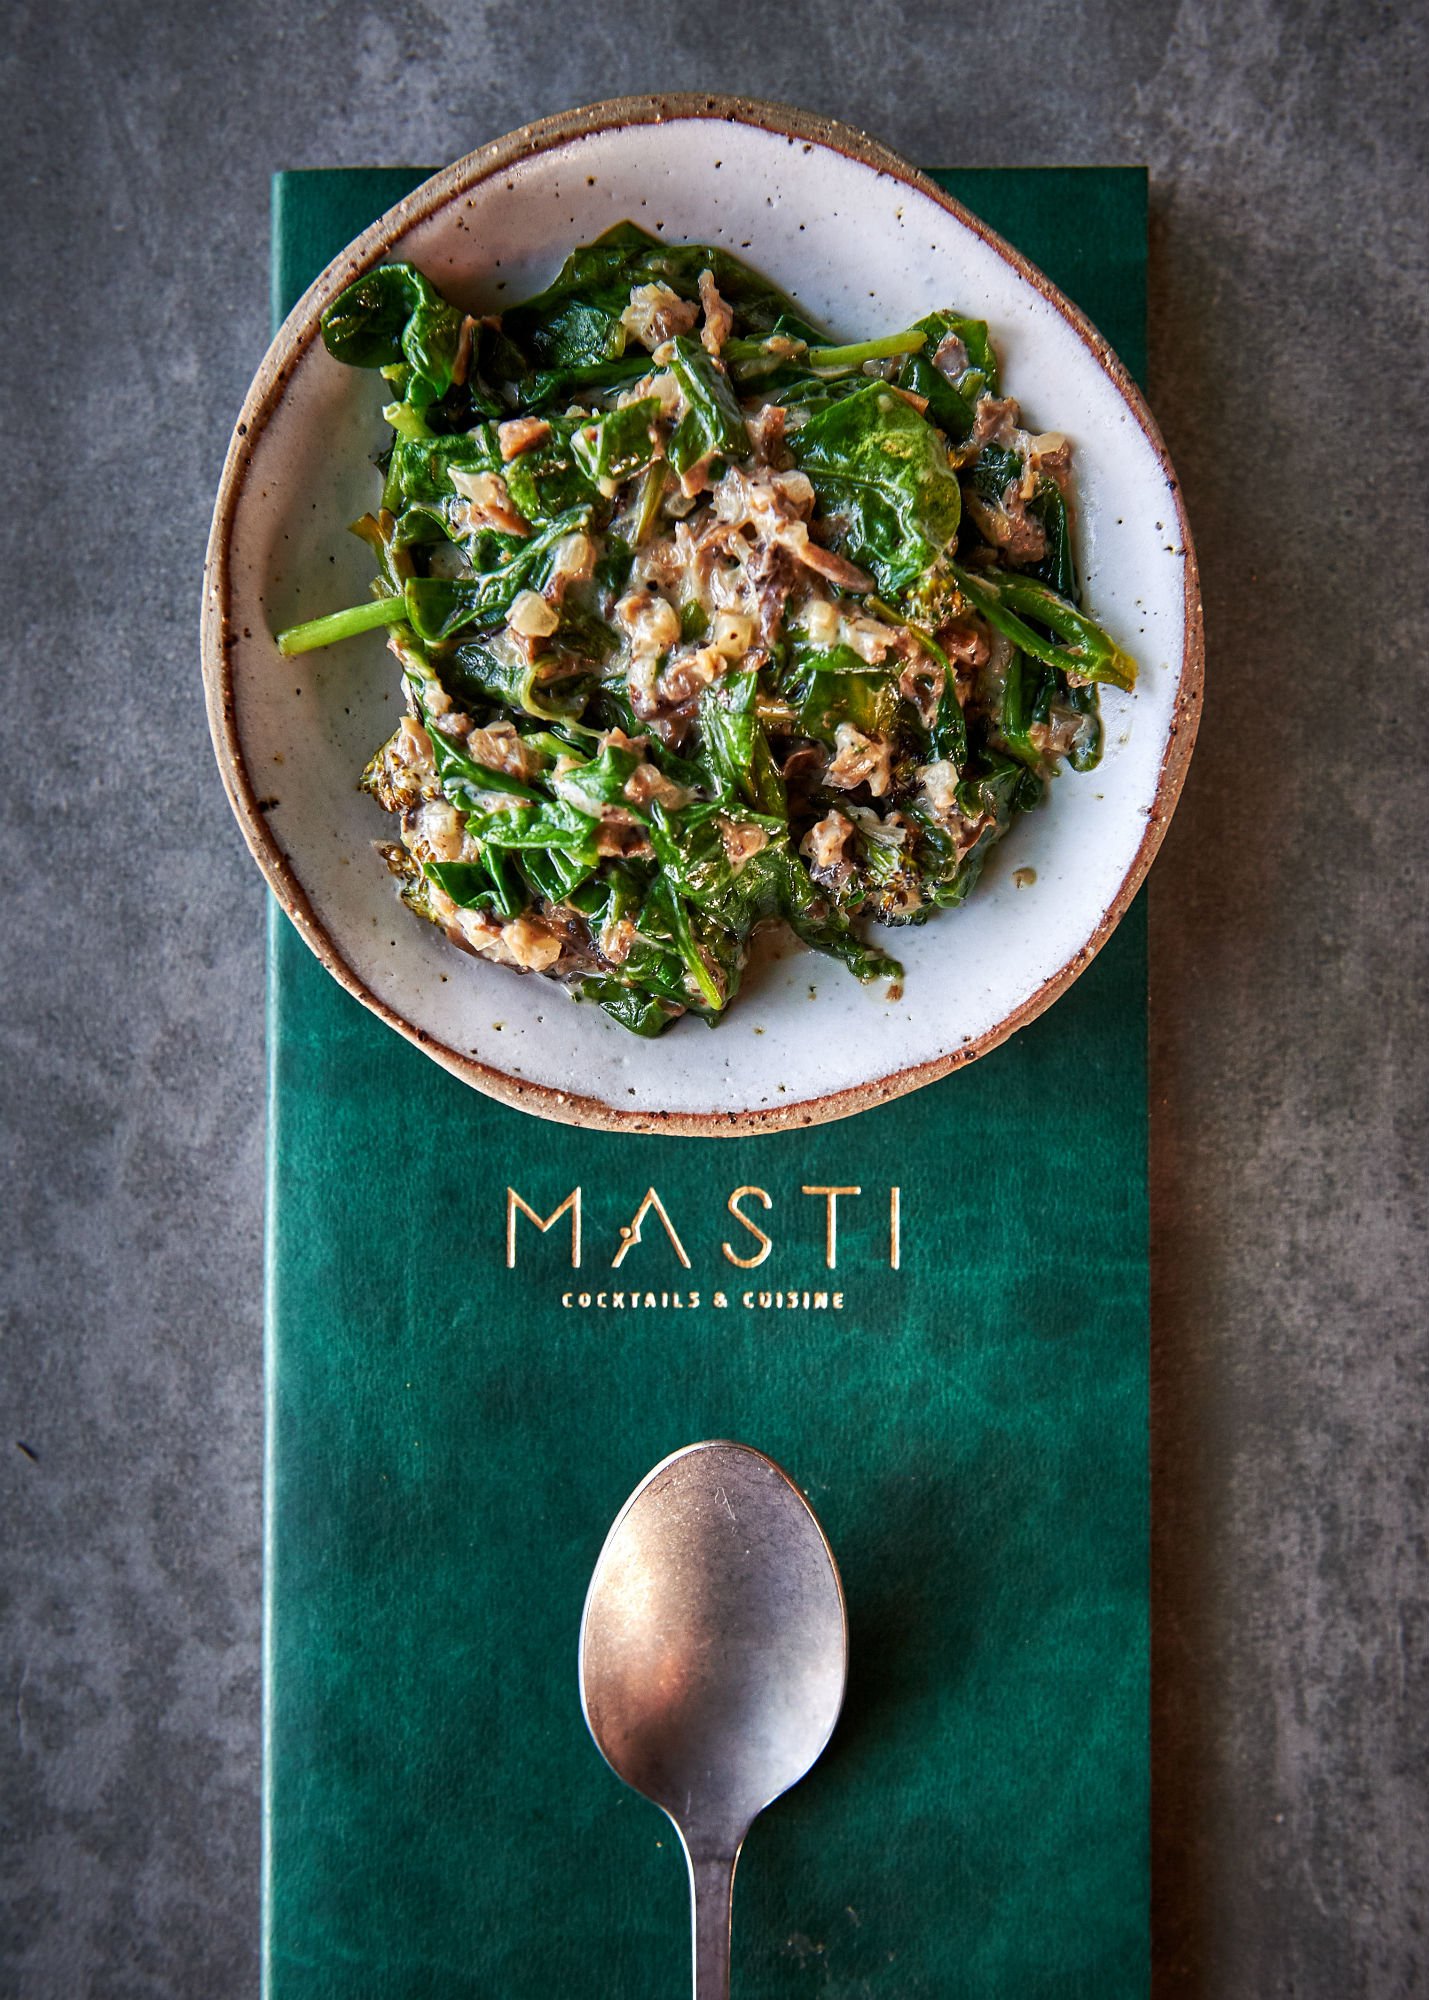 Creamed spinach at Masti in La Mer, Dubai